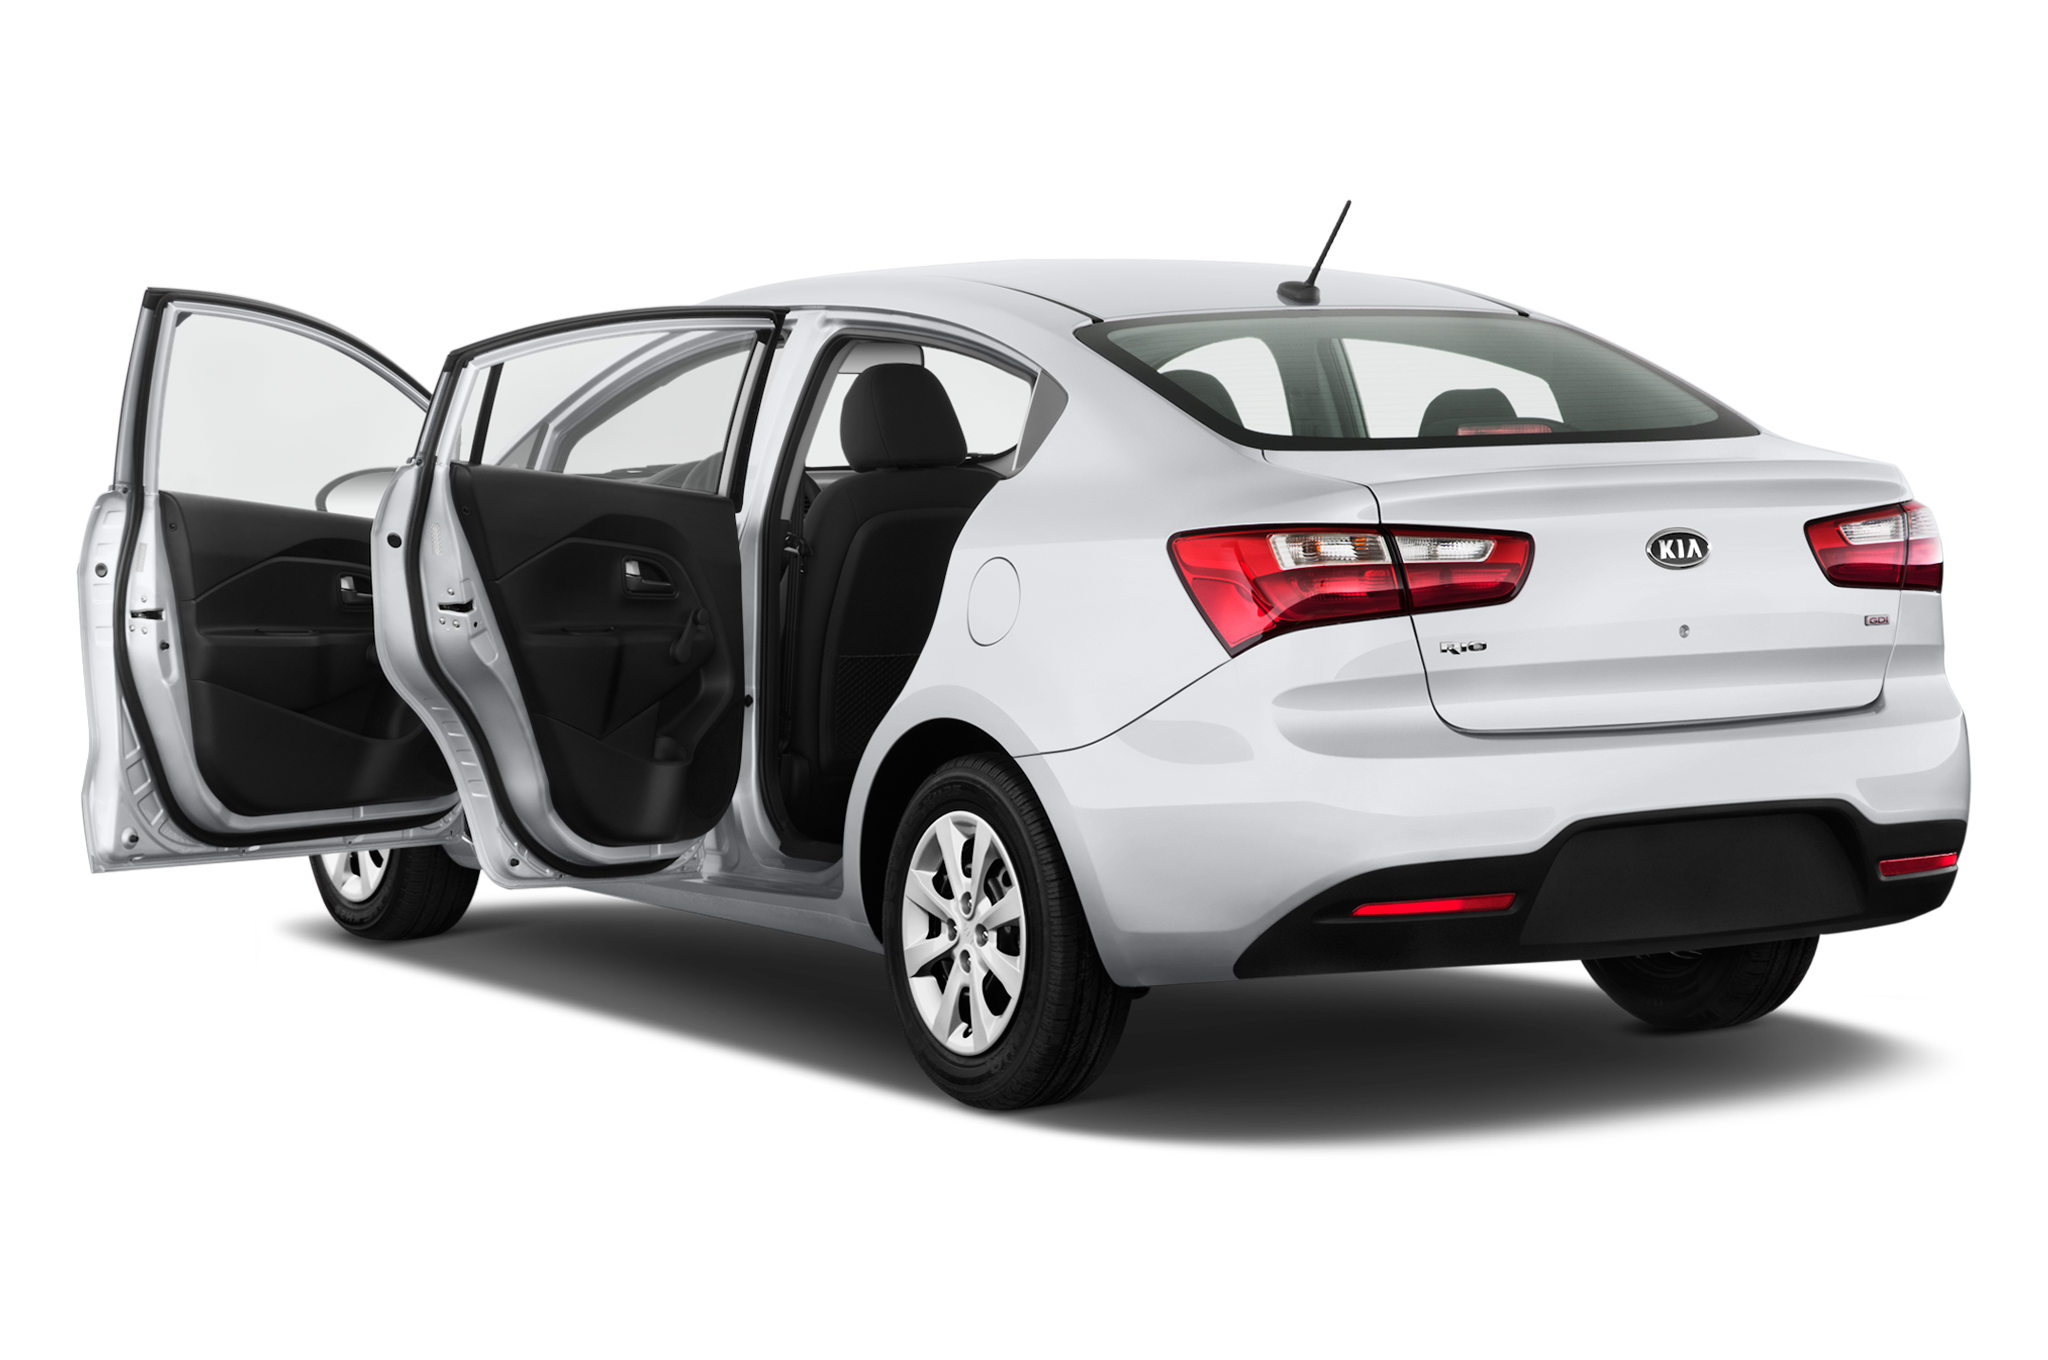 2012 Kia Rio 5-door - First Drive - Automobile Magazine